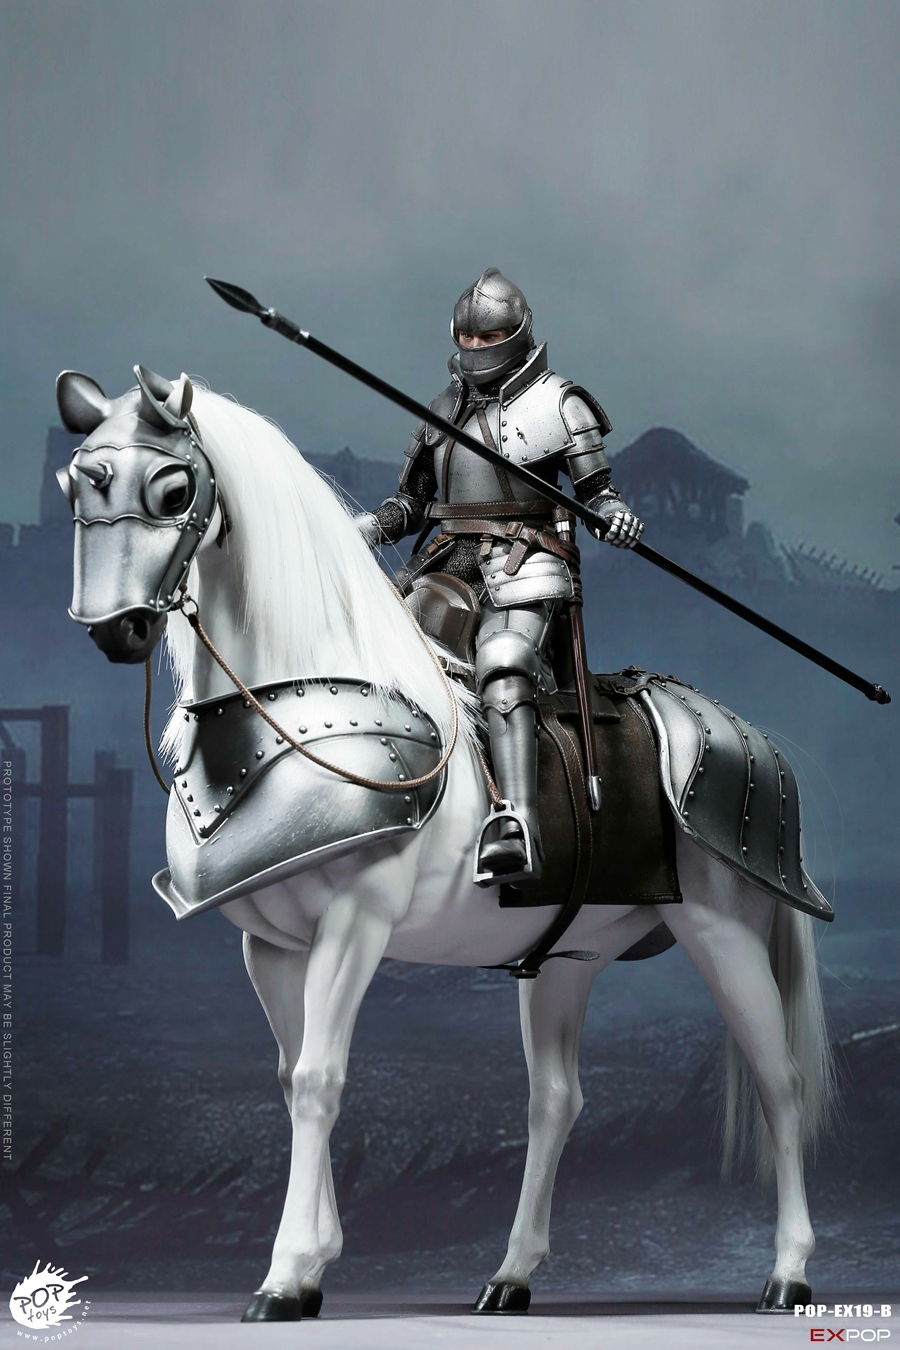 knight - NEW PRODUCT: POPTOYS New Products: 1/6 St. Knights - Assault Edition & Triumph Edition & Iron Armor (POP-EX19 ABC) 16461510